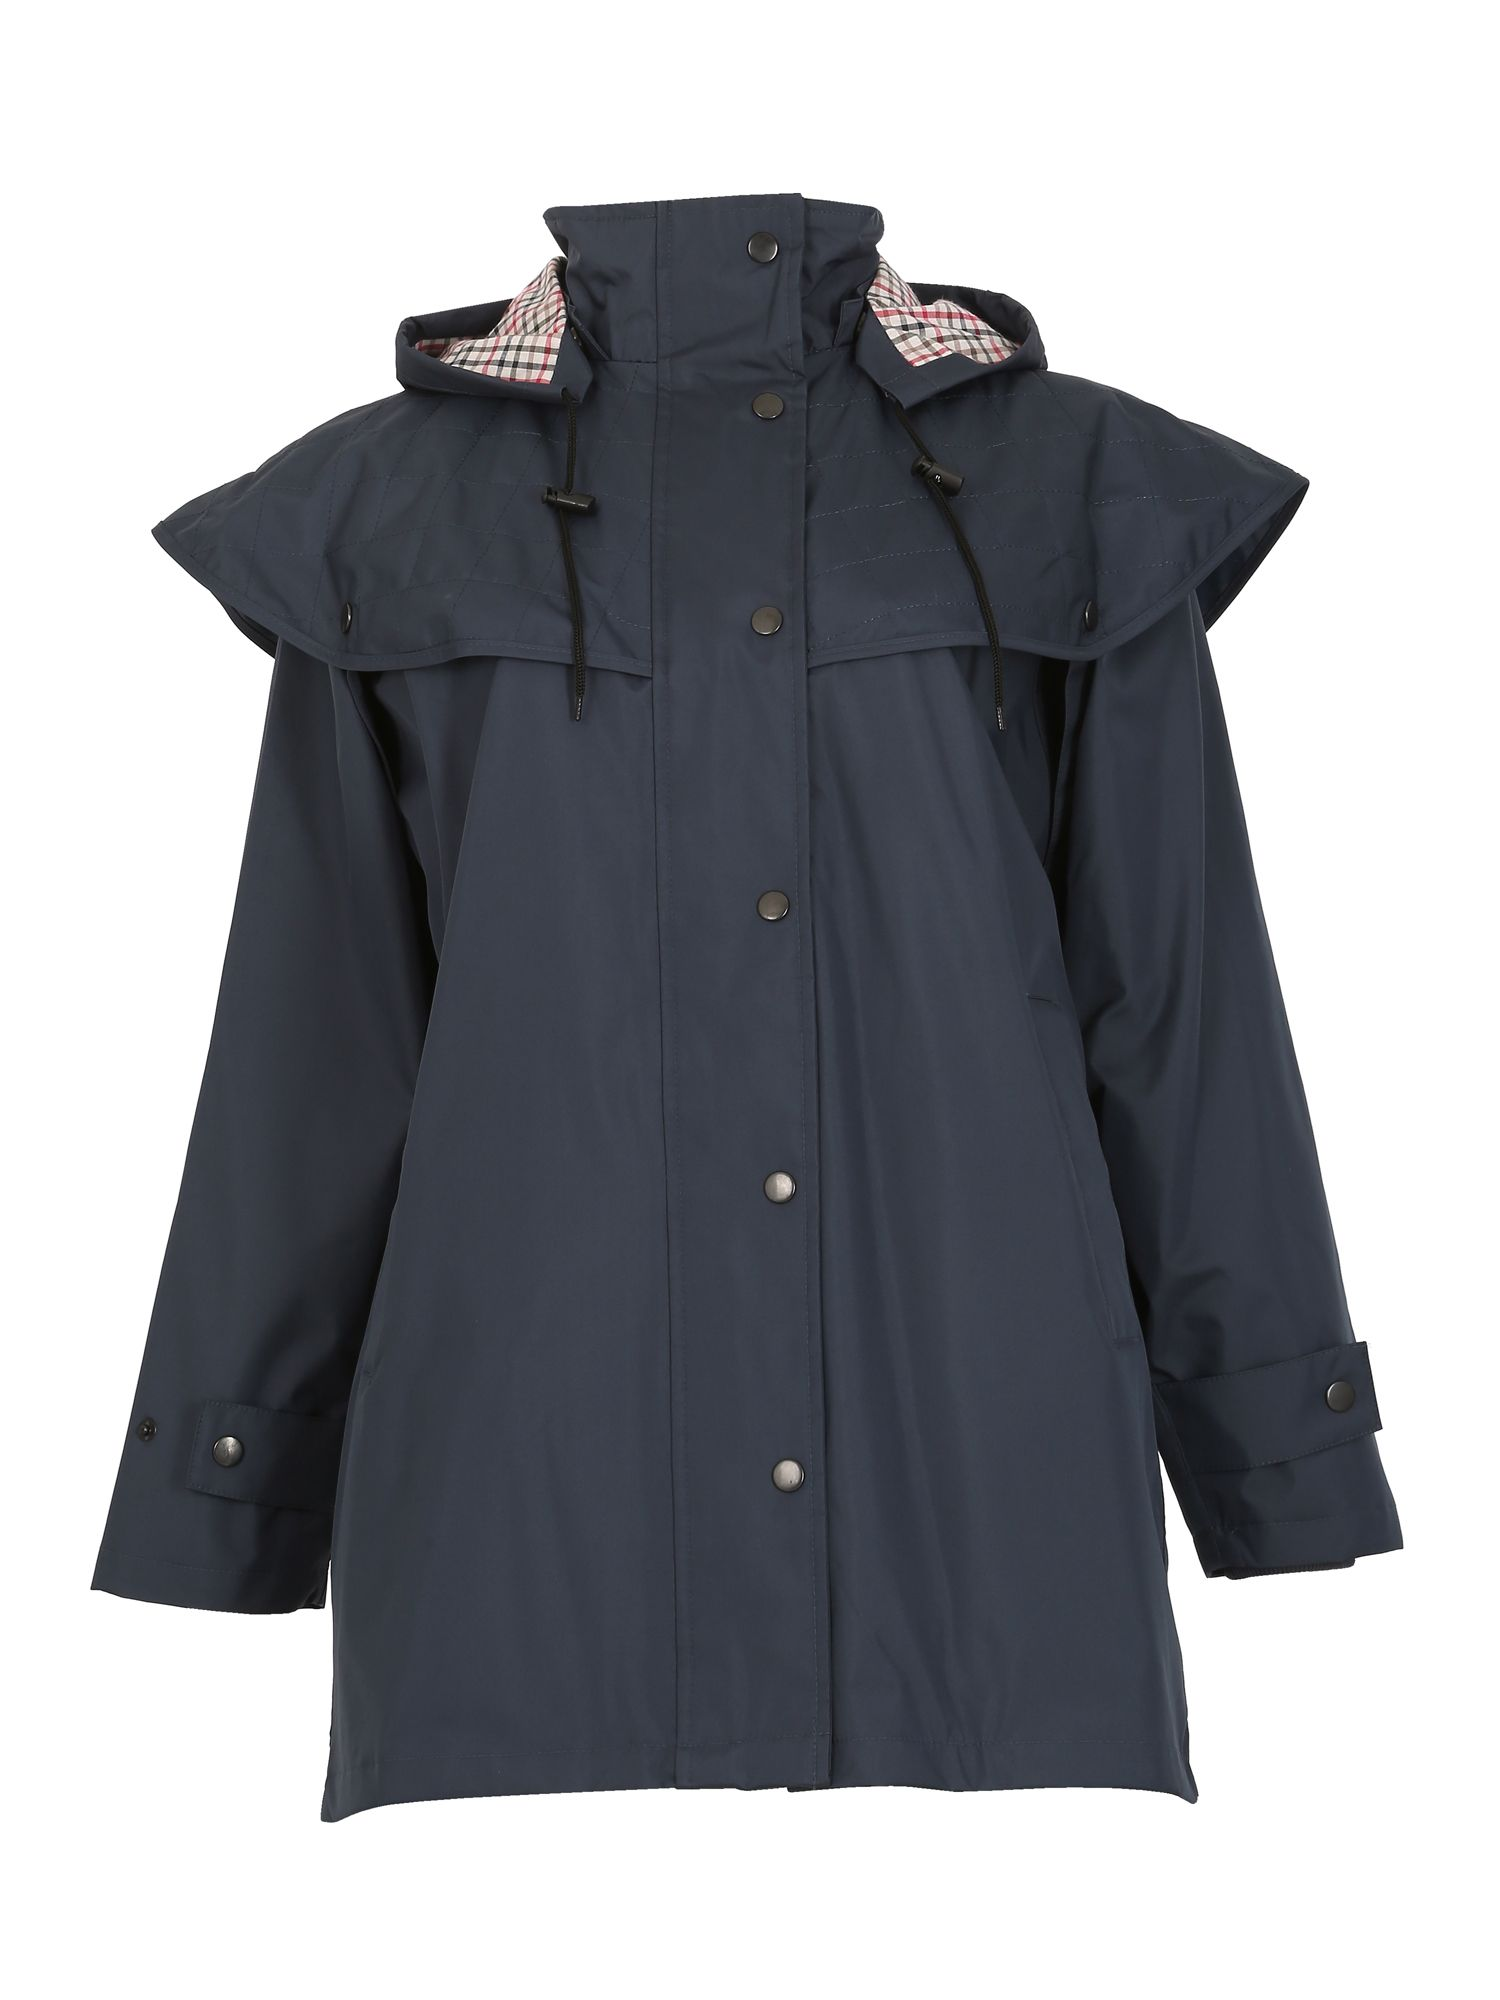 David Barry David Barry Shower Resistant Storm Jacket, Navy